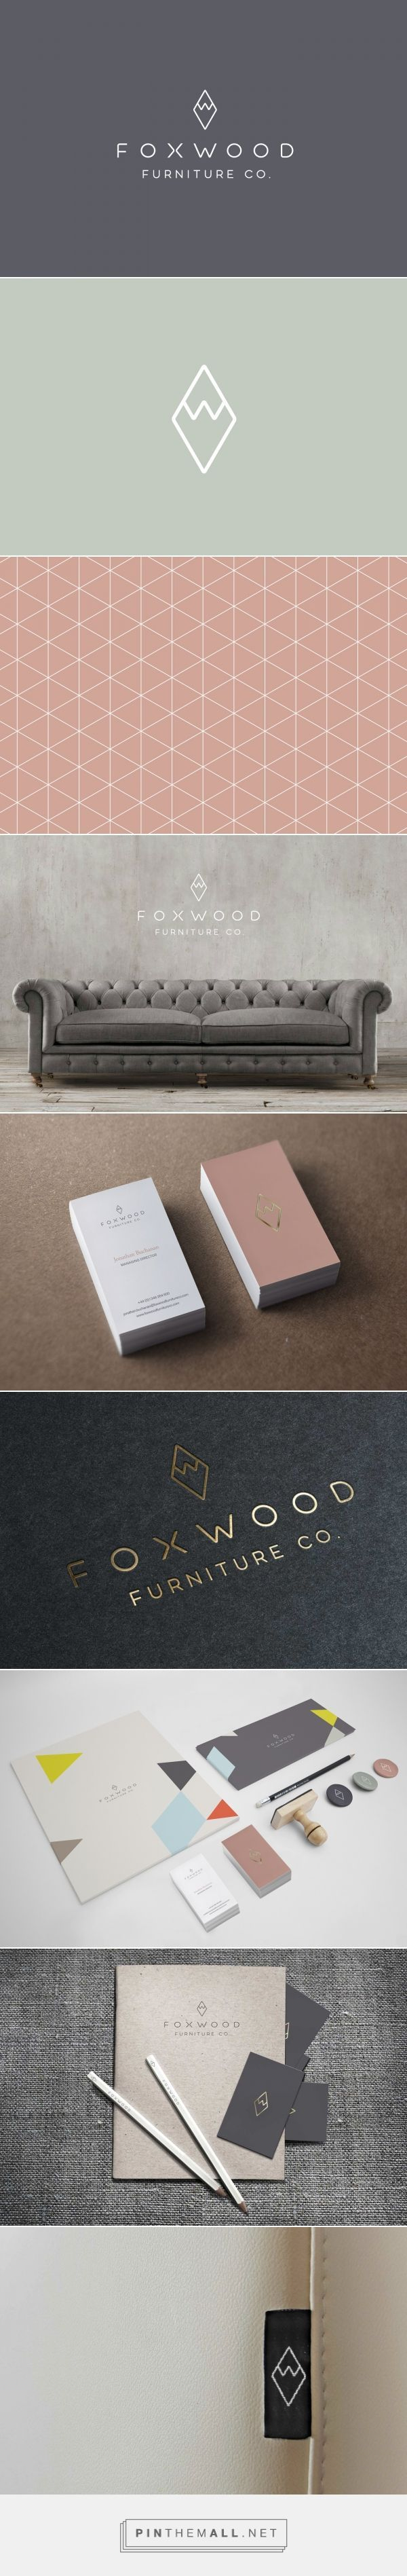 Foxwood Furniture Co | Graphic design agency | Tonik - created via https://pinthemall.net